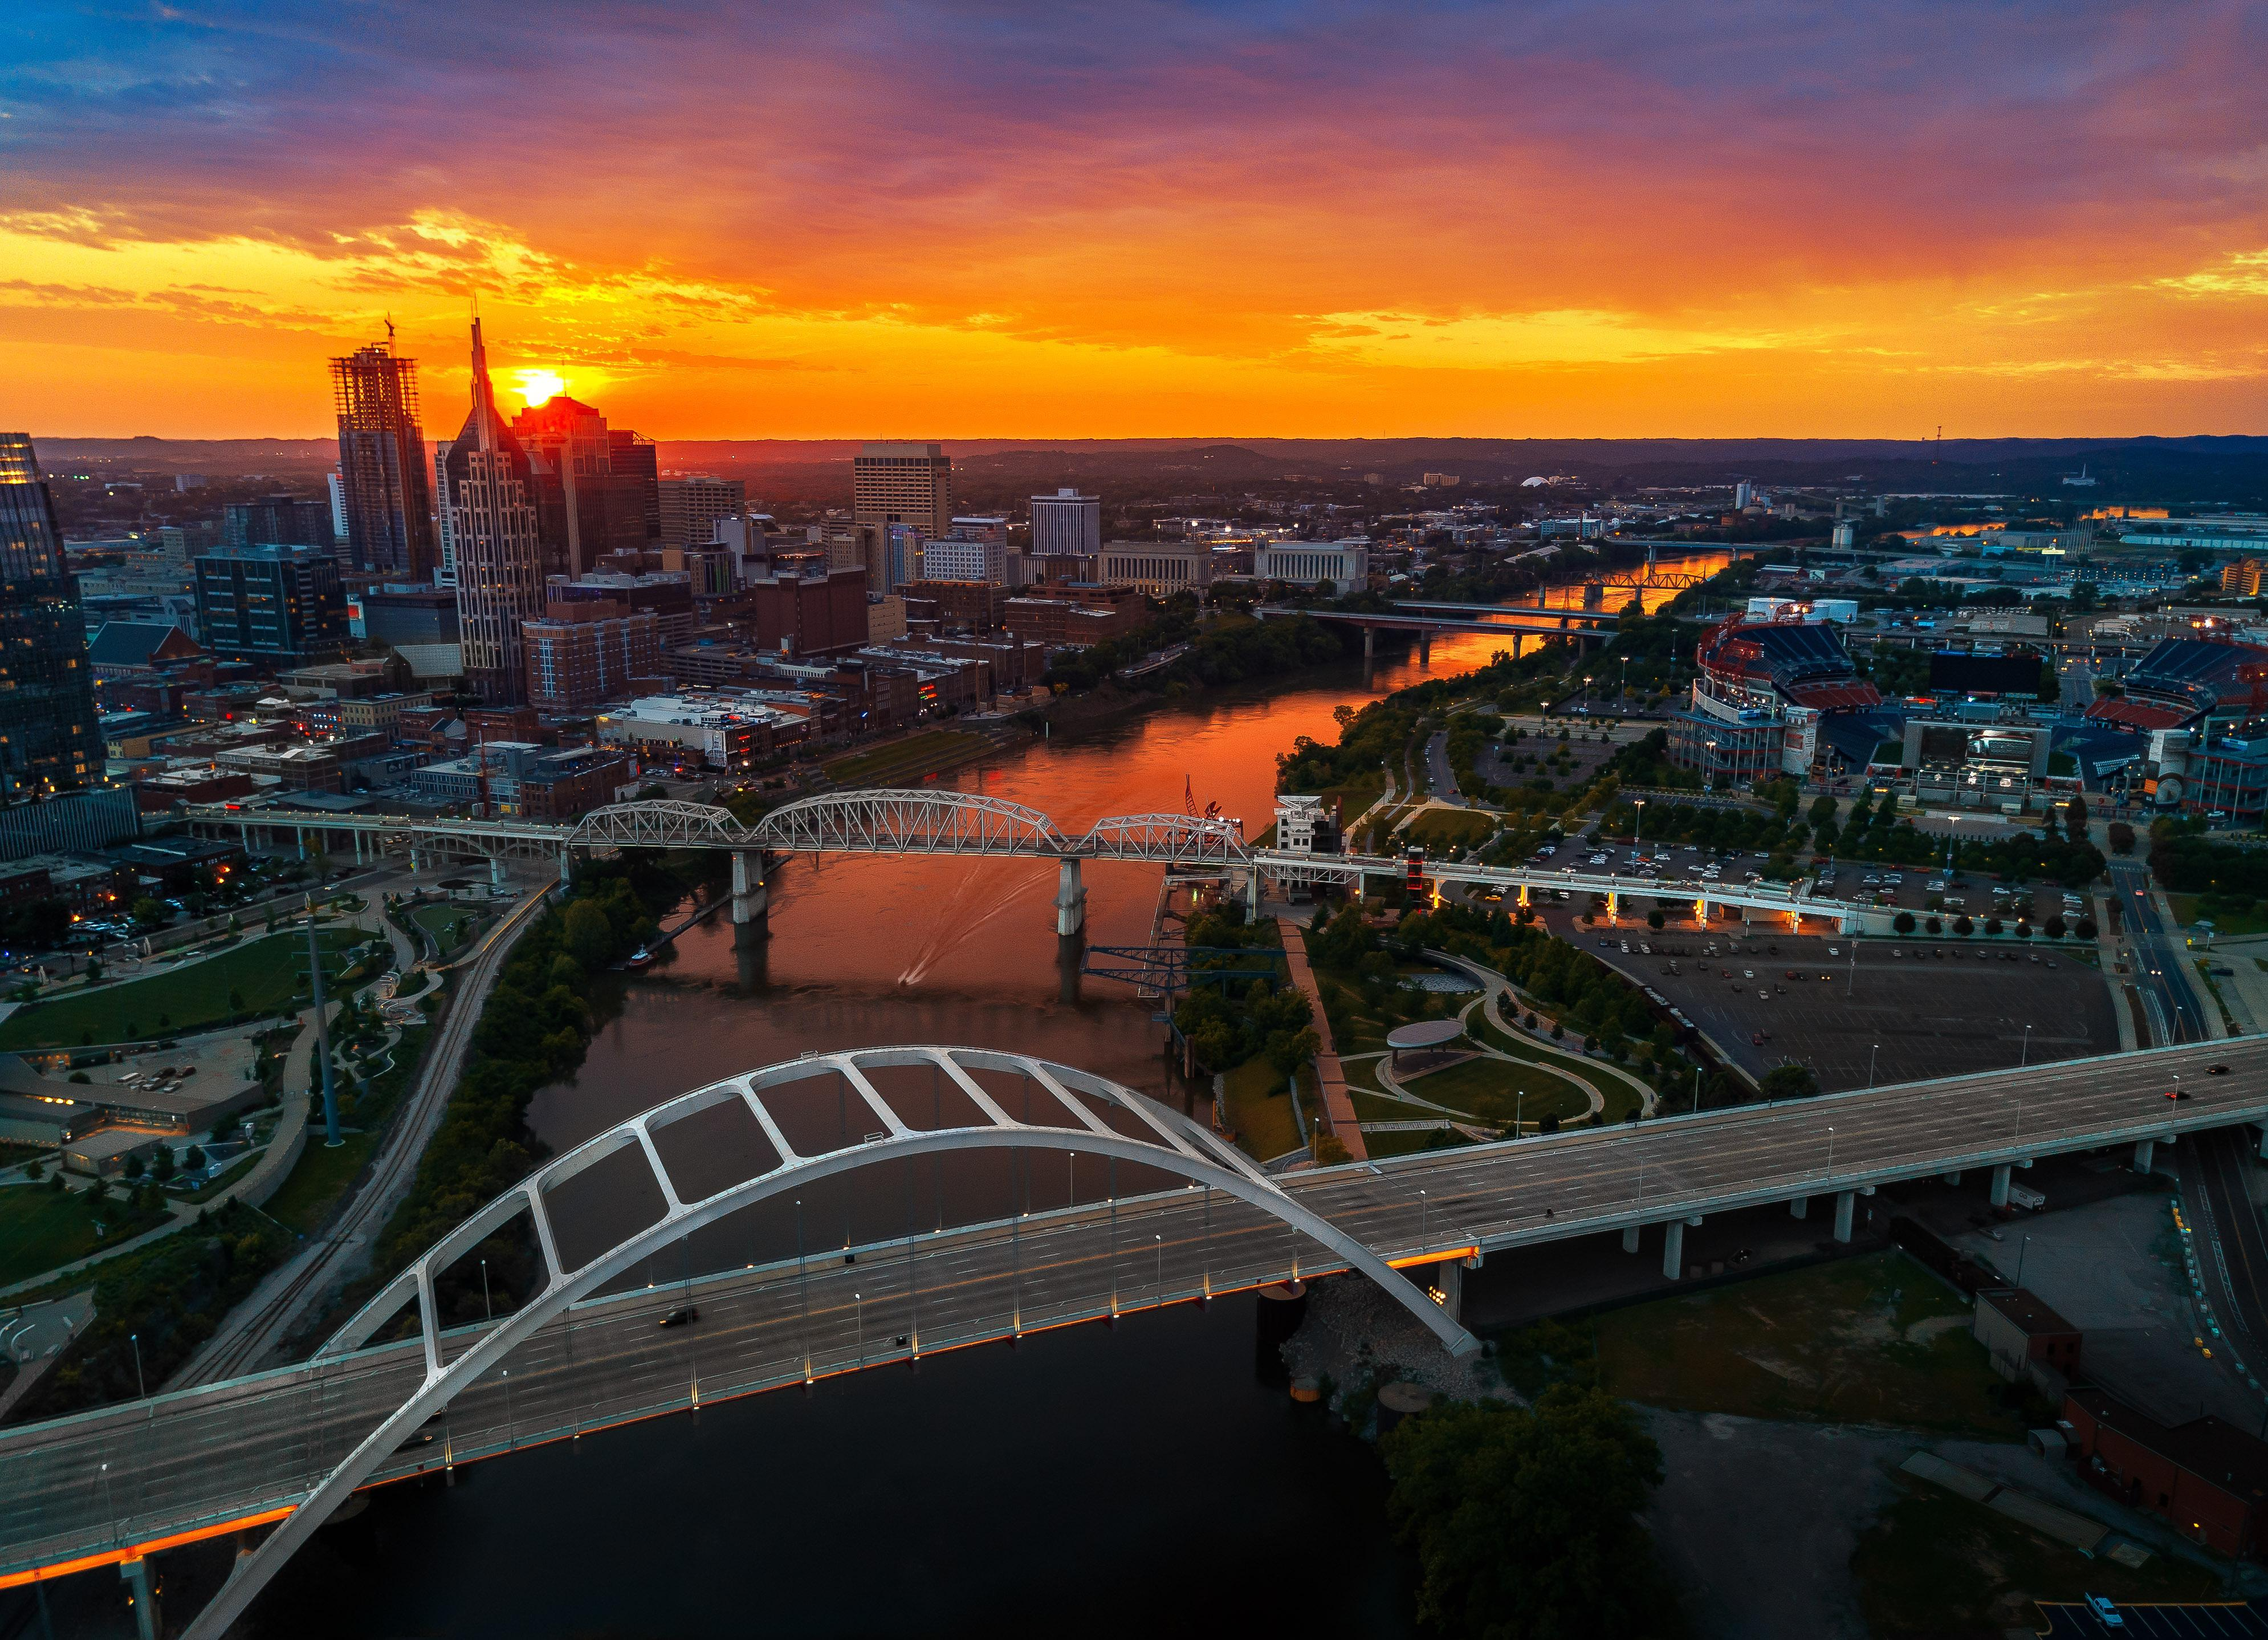 The sun sets on another fun-filled day in Music City, USA.